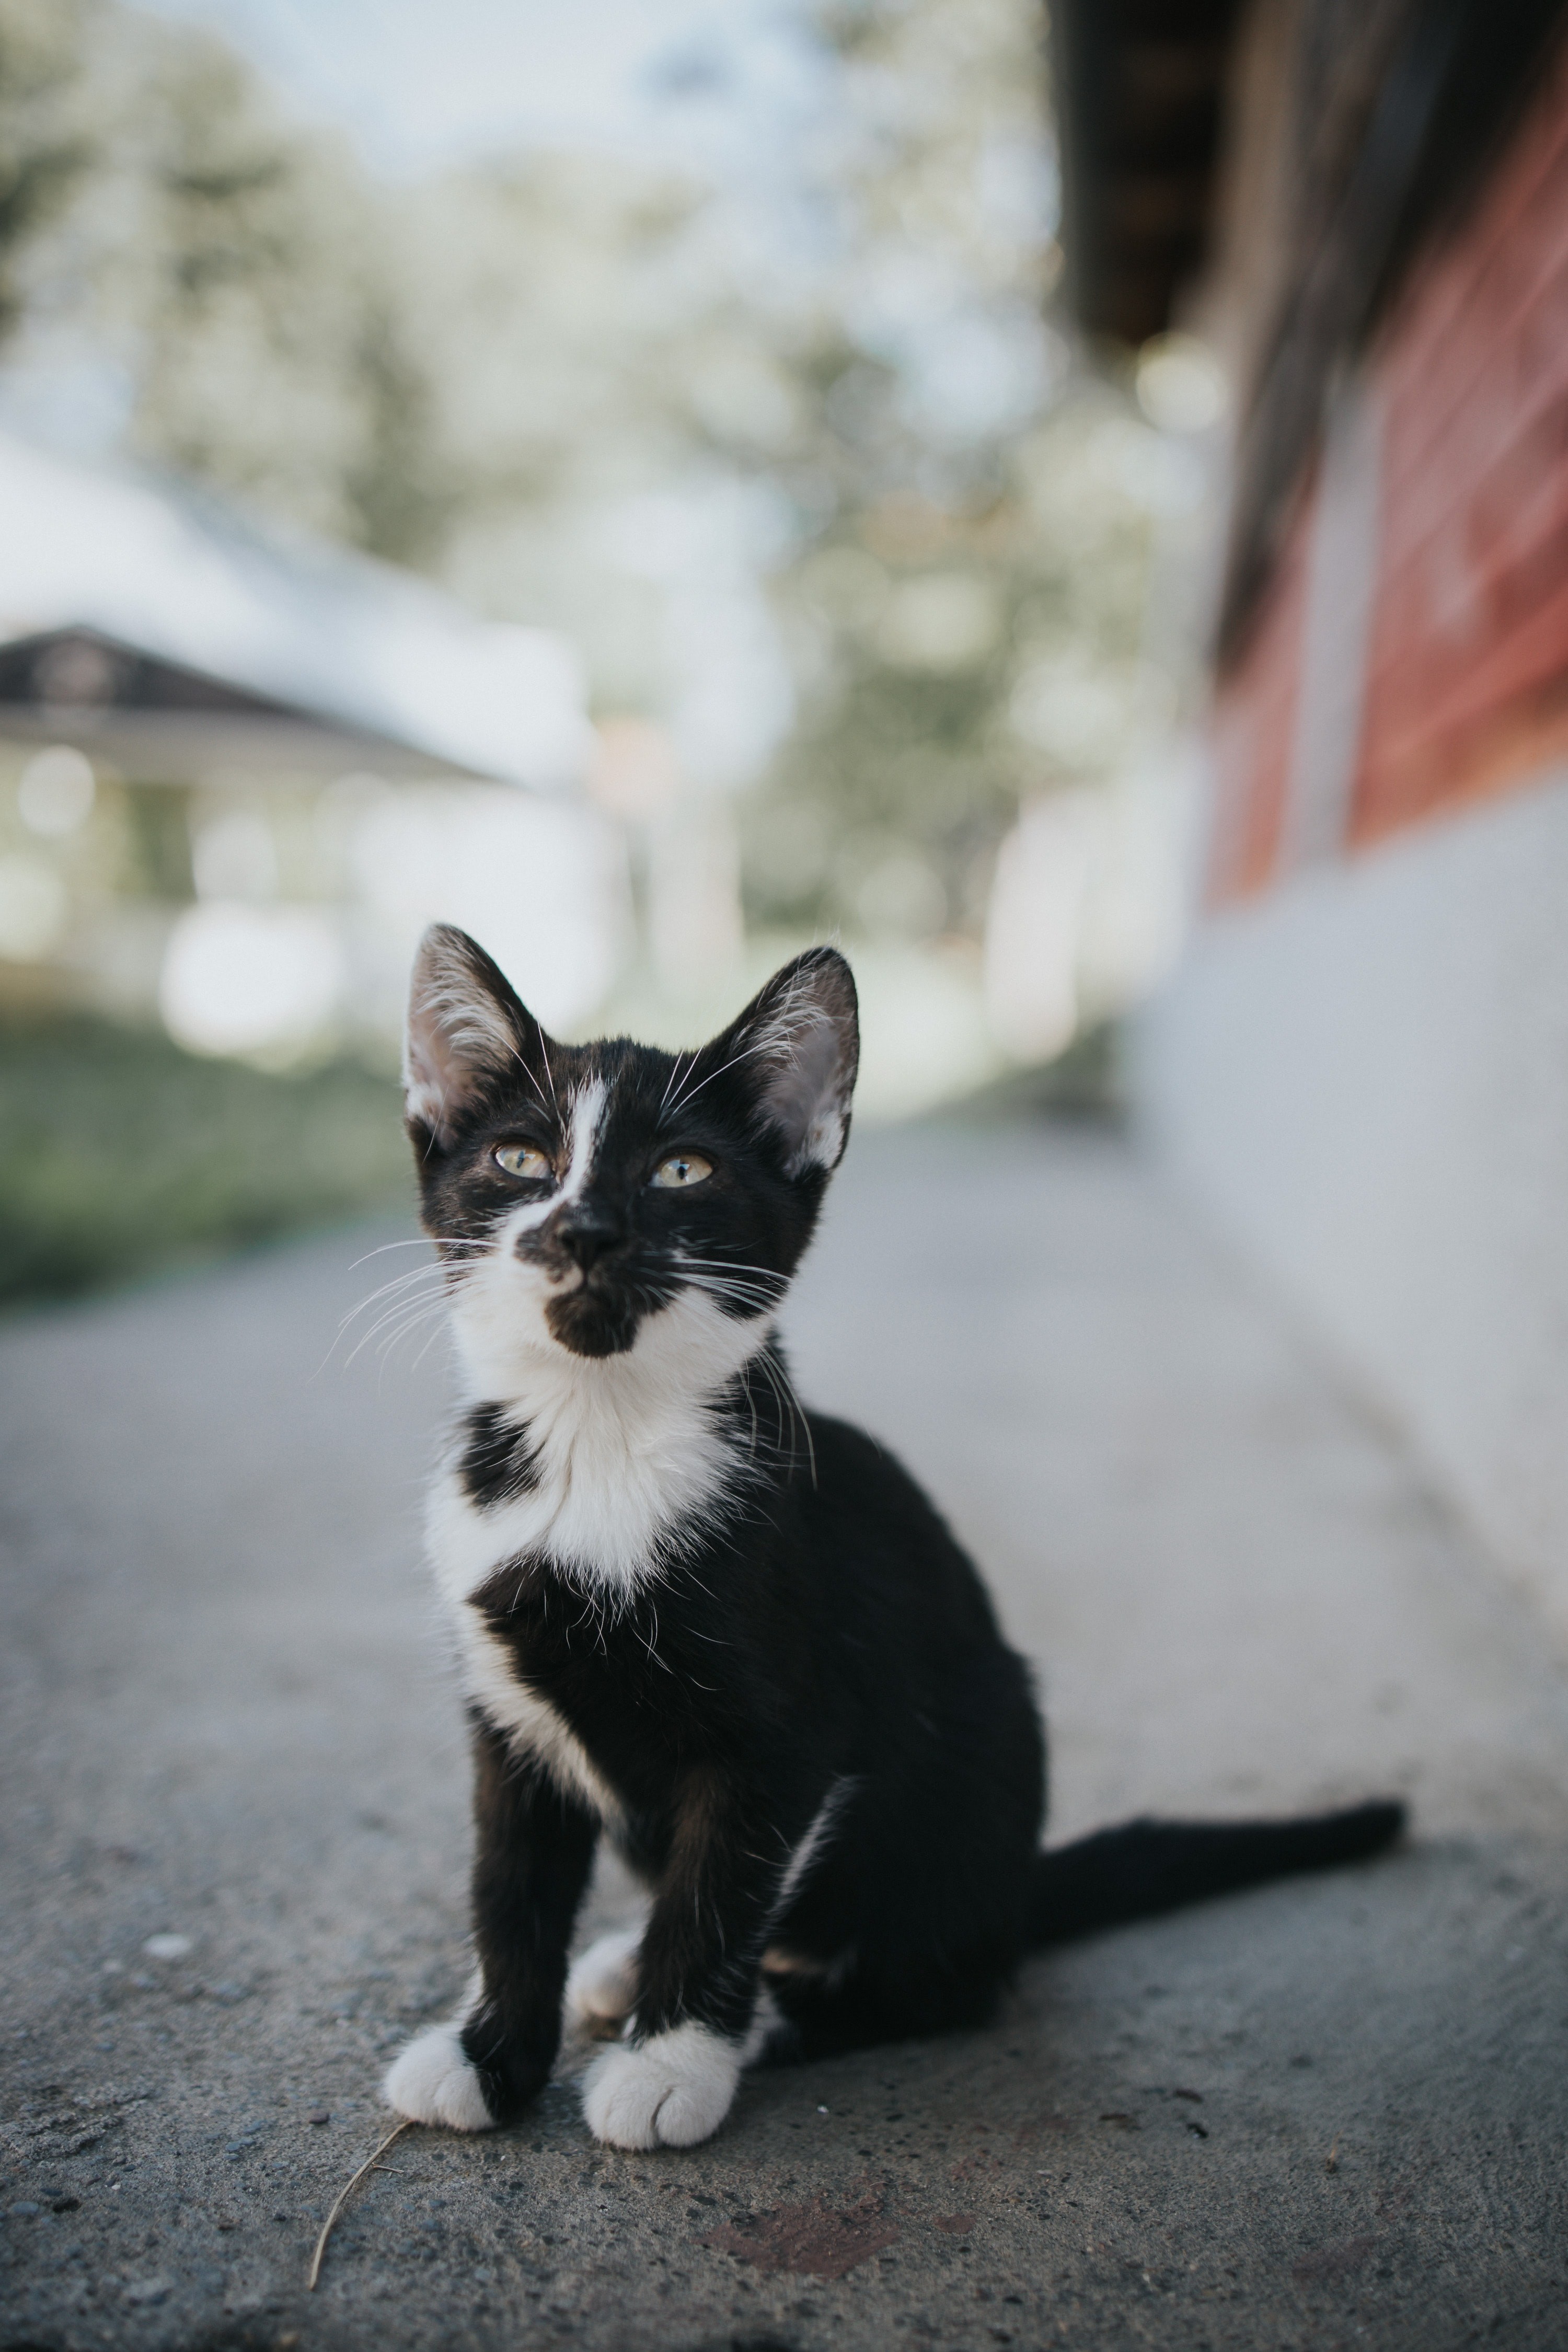 132912 download wallpaper Animals, Kitty, Kitten, Pet, Sight, Opinion, Nice, Sweetheart screensavers and pictures for free